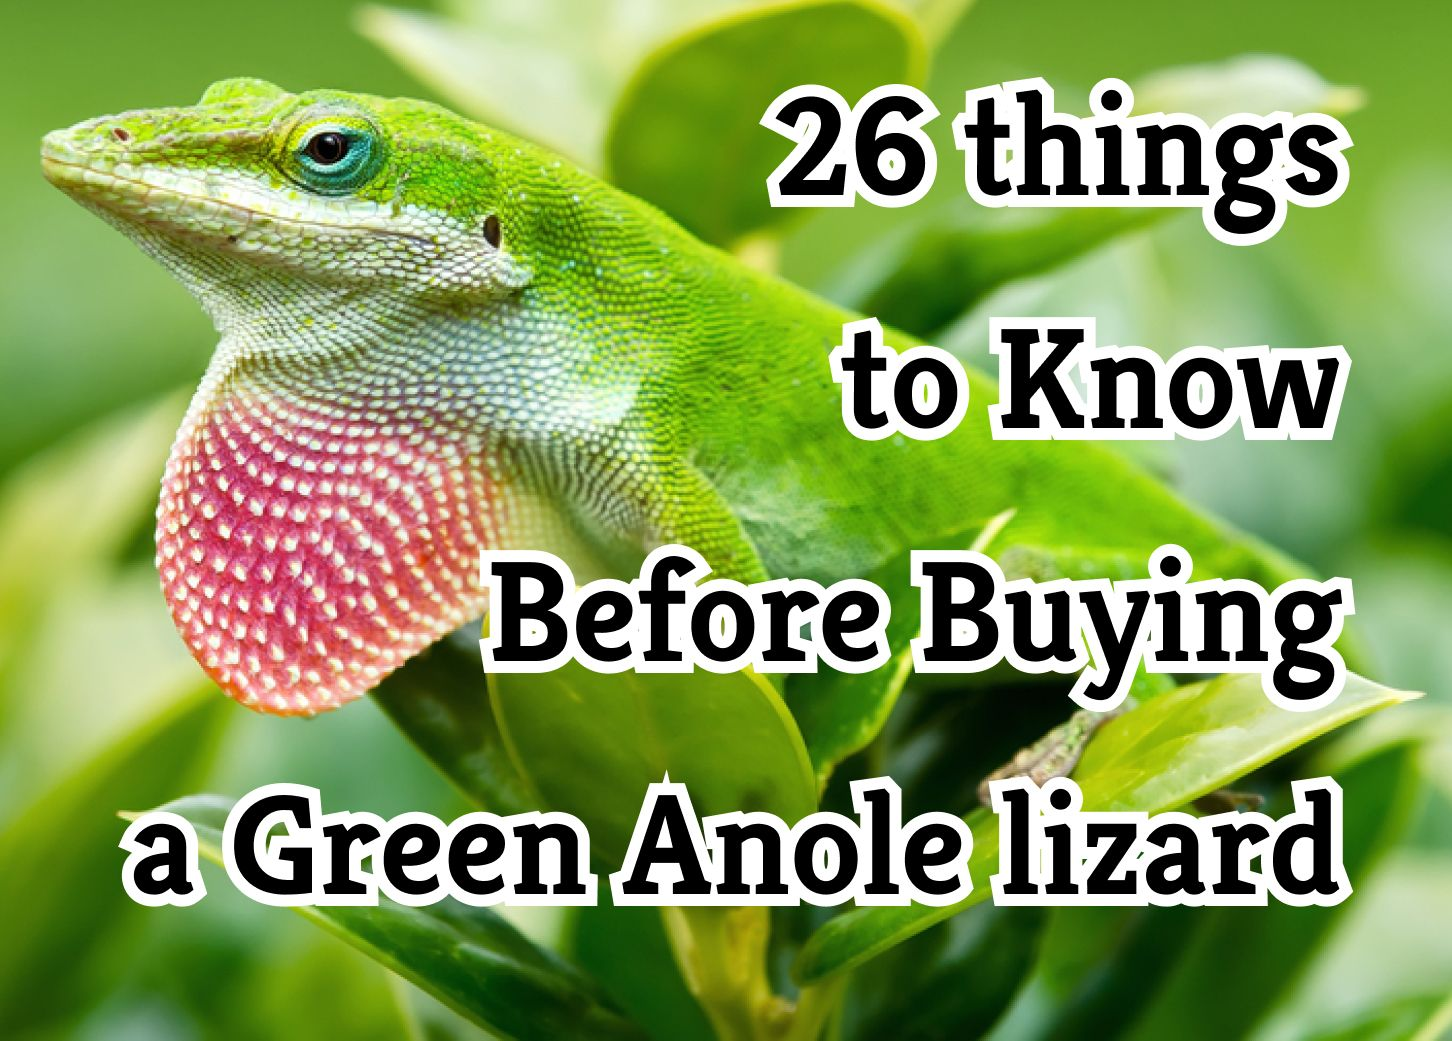 26 Crucial Things to Know About the Green Anole as Pets